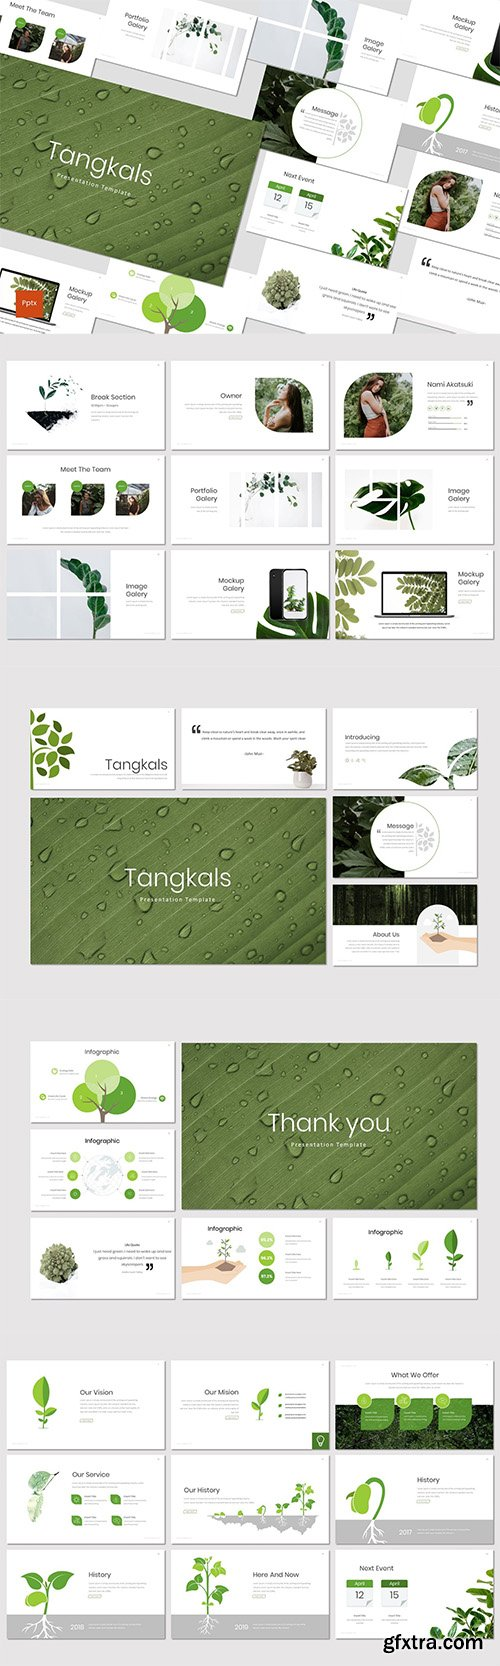 Tangkals - Powerpoint Keynote and Google Slides Templates